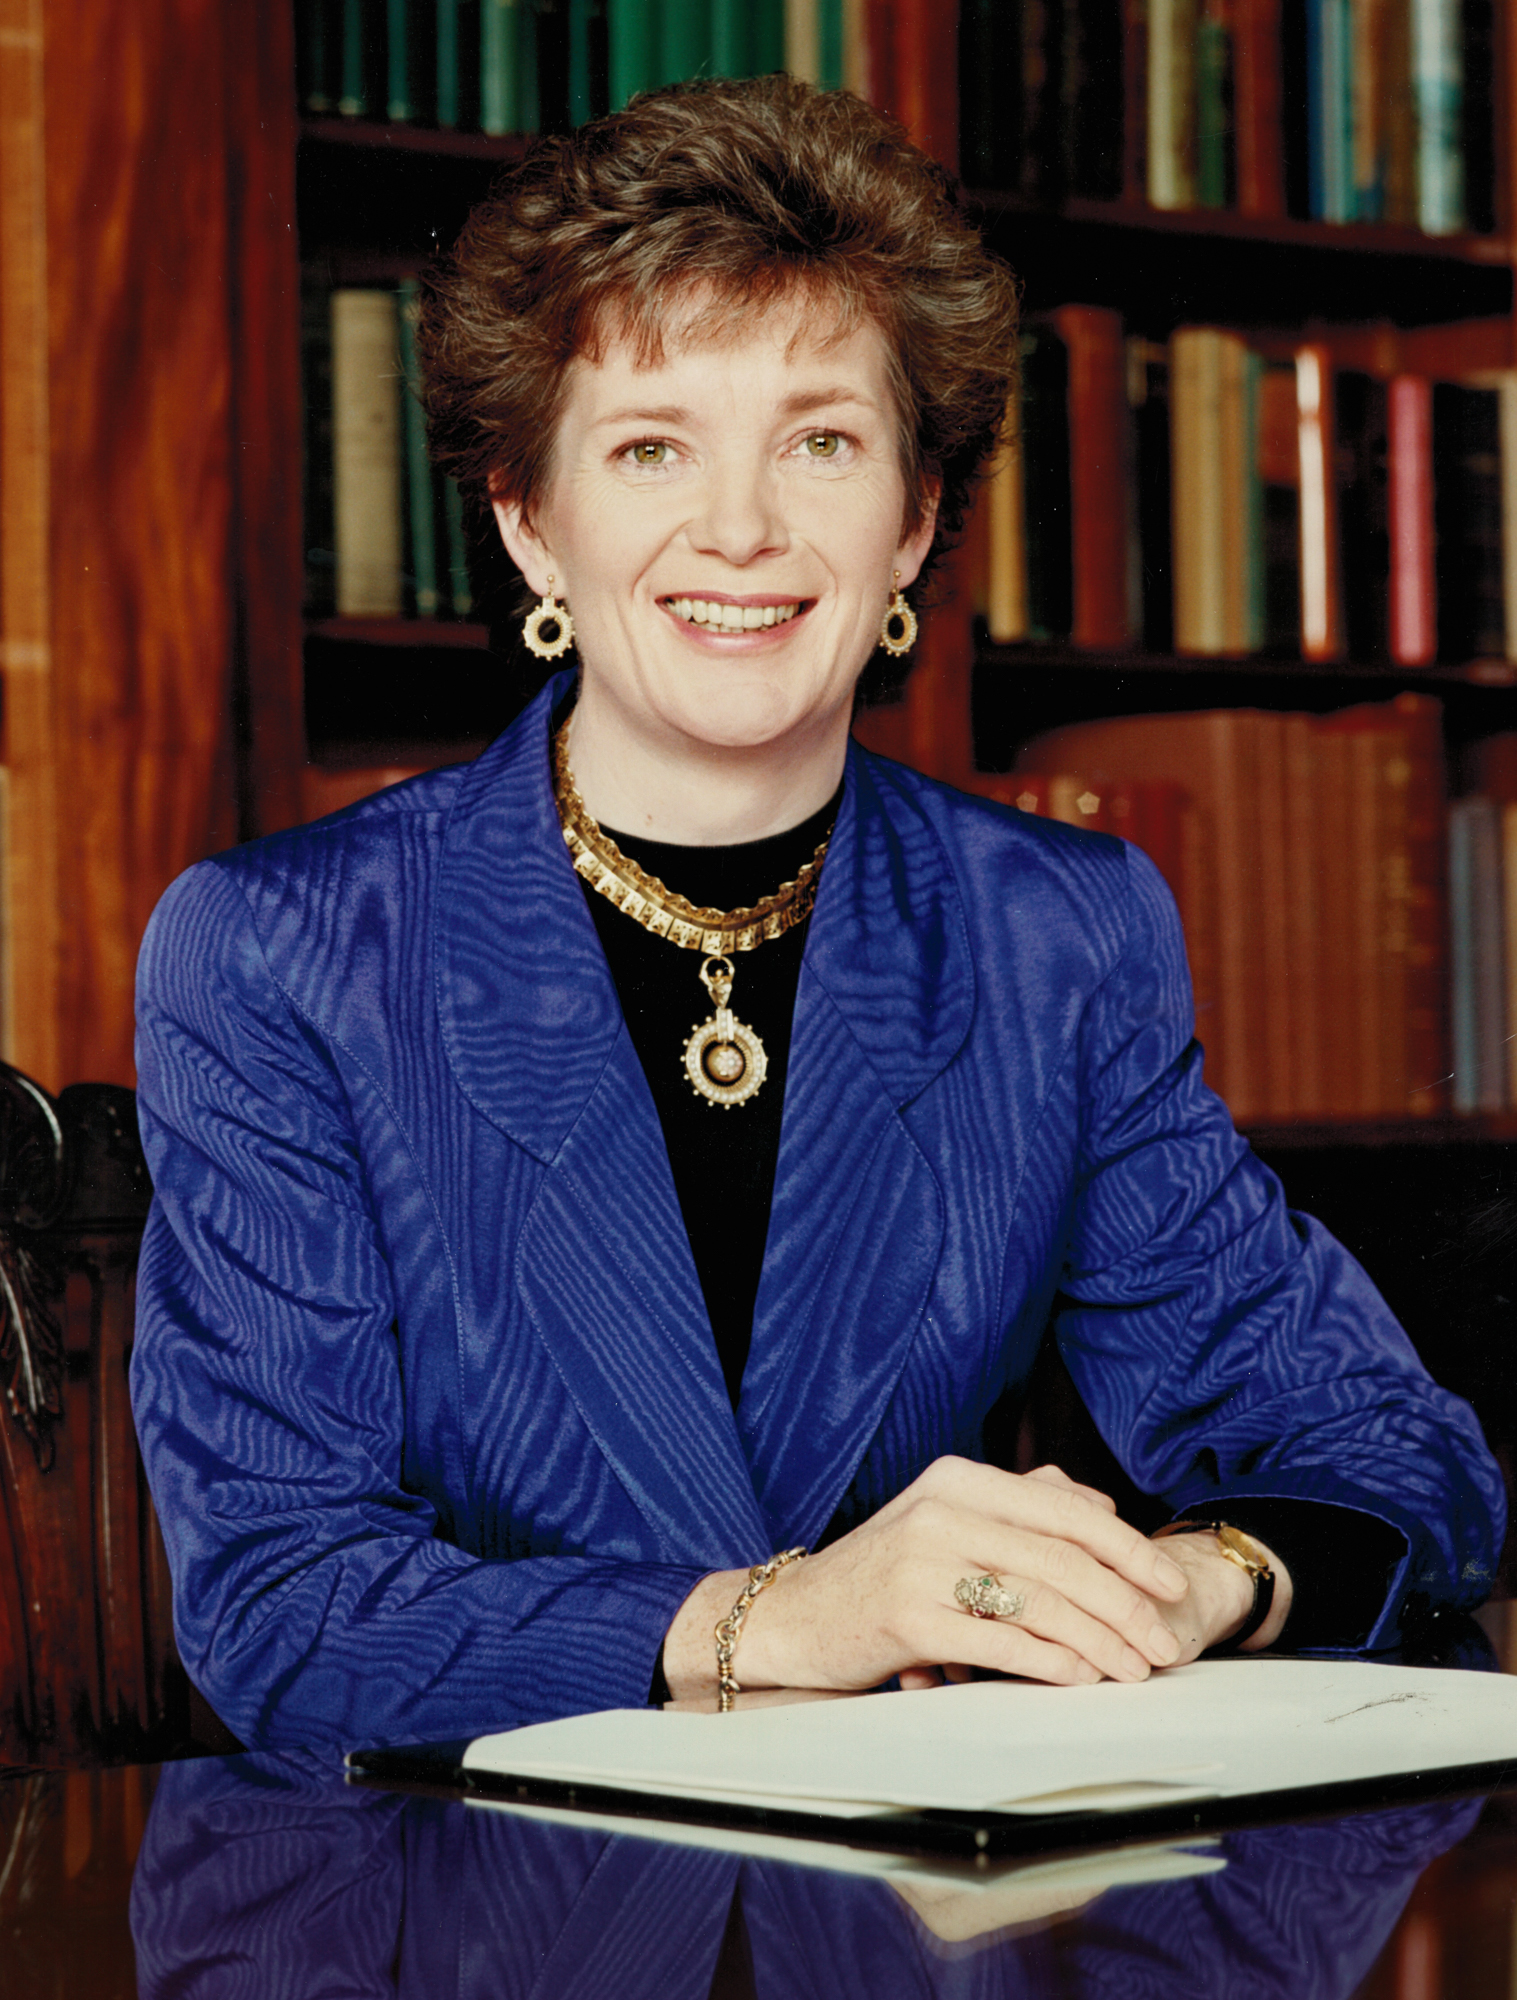 Official portrait of Mary Robinson, President of Ireland.